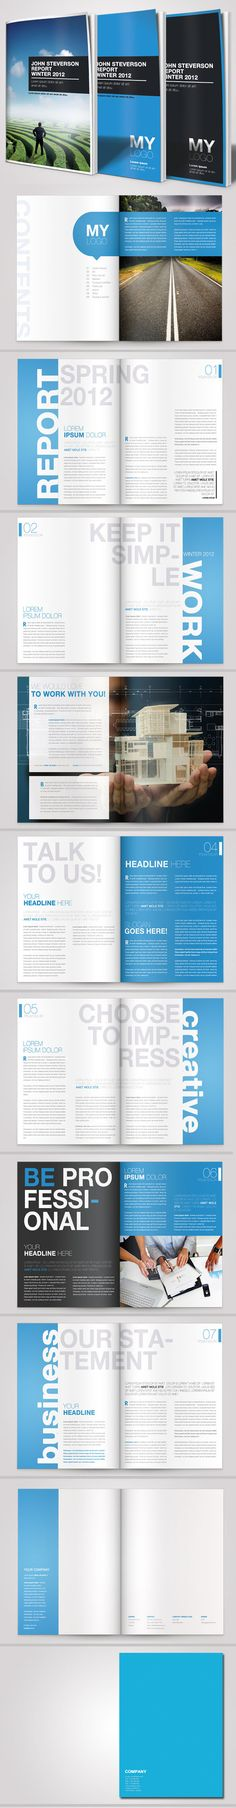 A4 Business Brochure Vol. 03 by Danijel Mokic via #Behance | #GraphicDesign #Brochure